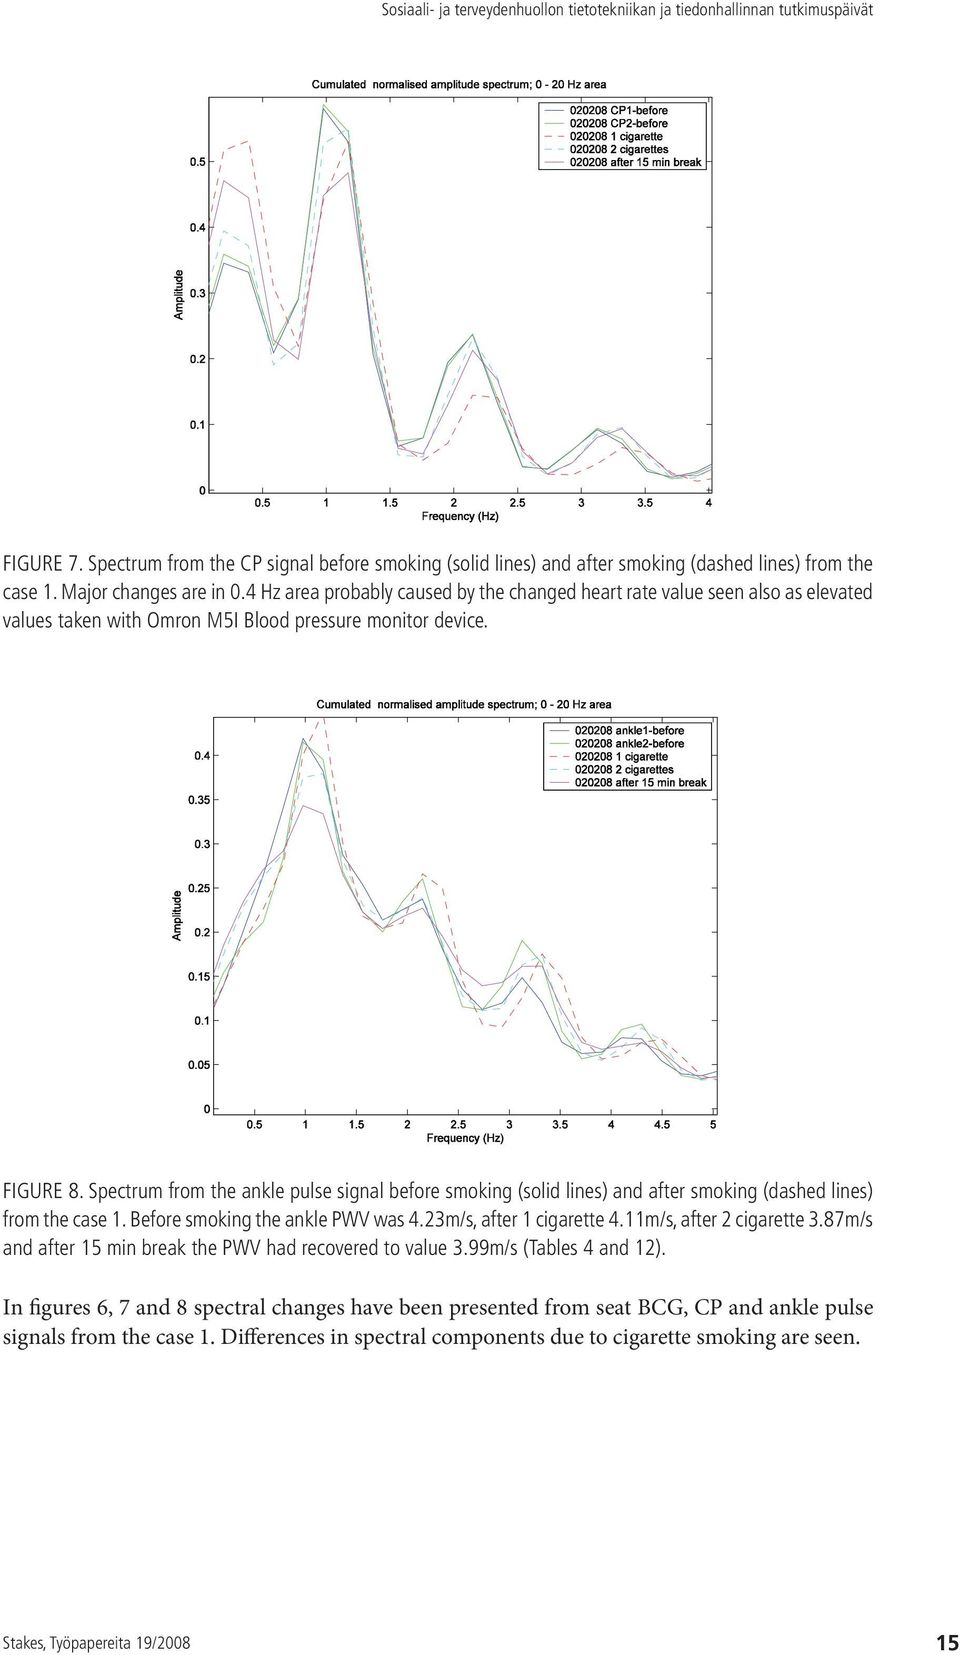 Spectrum from the ankle pulse signal before smoking (solid lines) and after smoking (dashed lines) from the case 1. Before smoking the ankle PWV was 4.23m/s, after 1 cigarette 4.